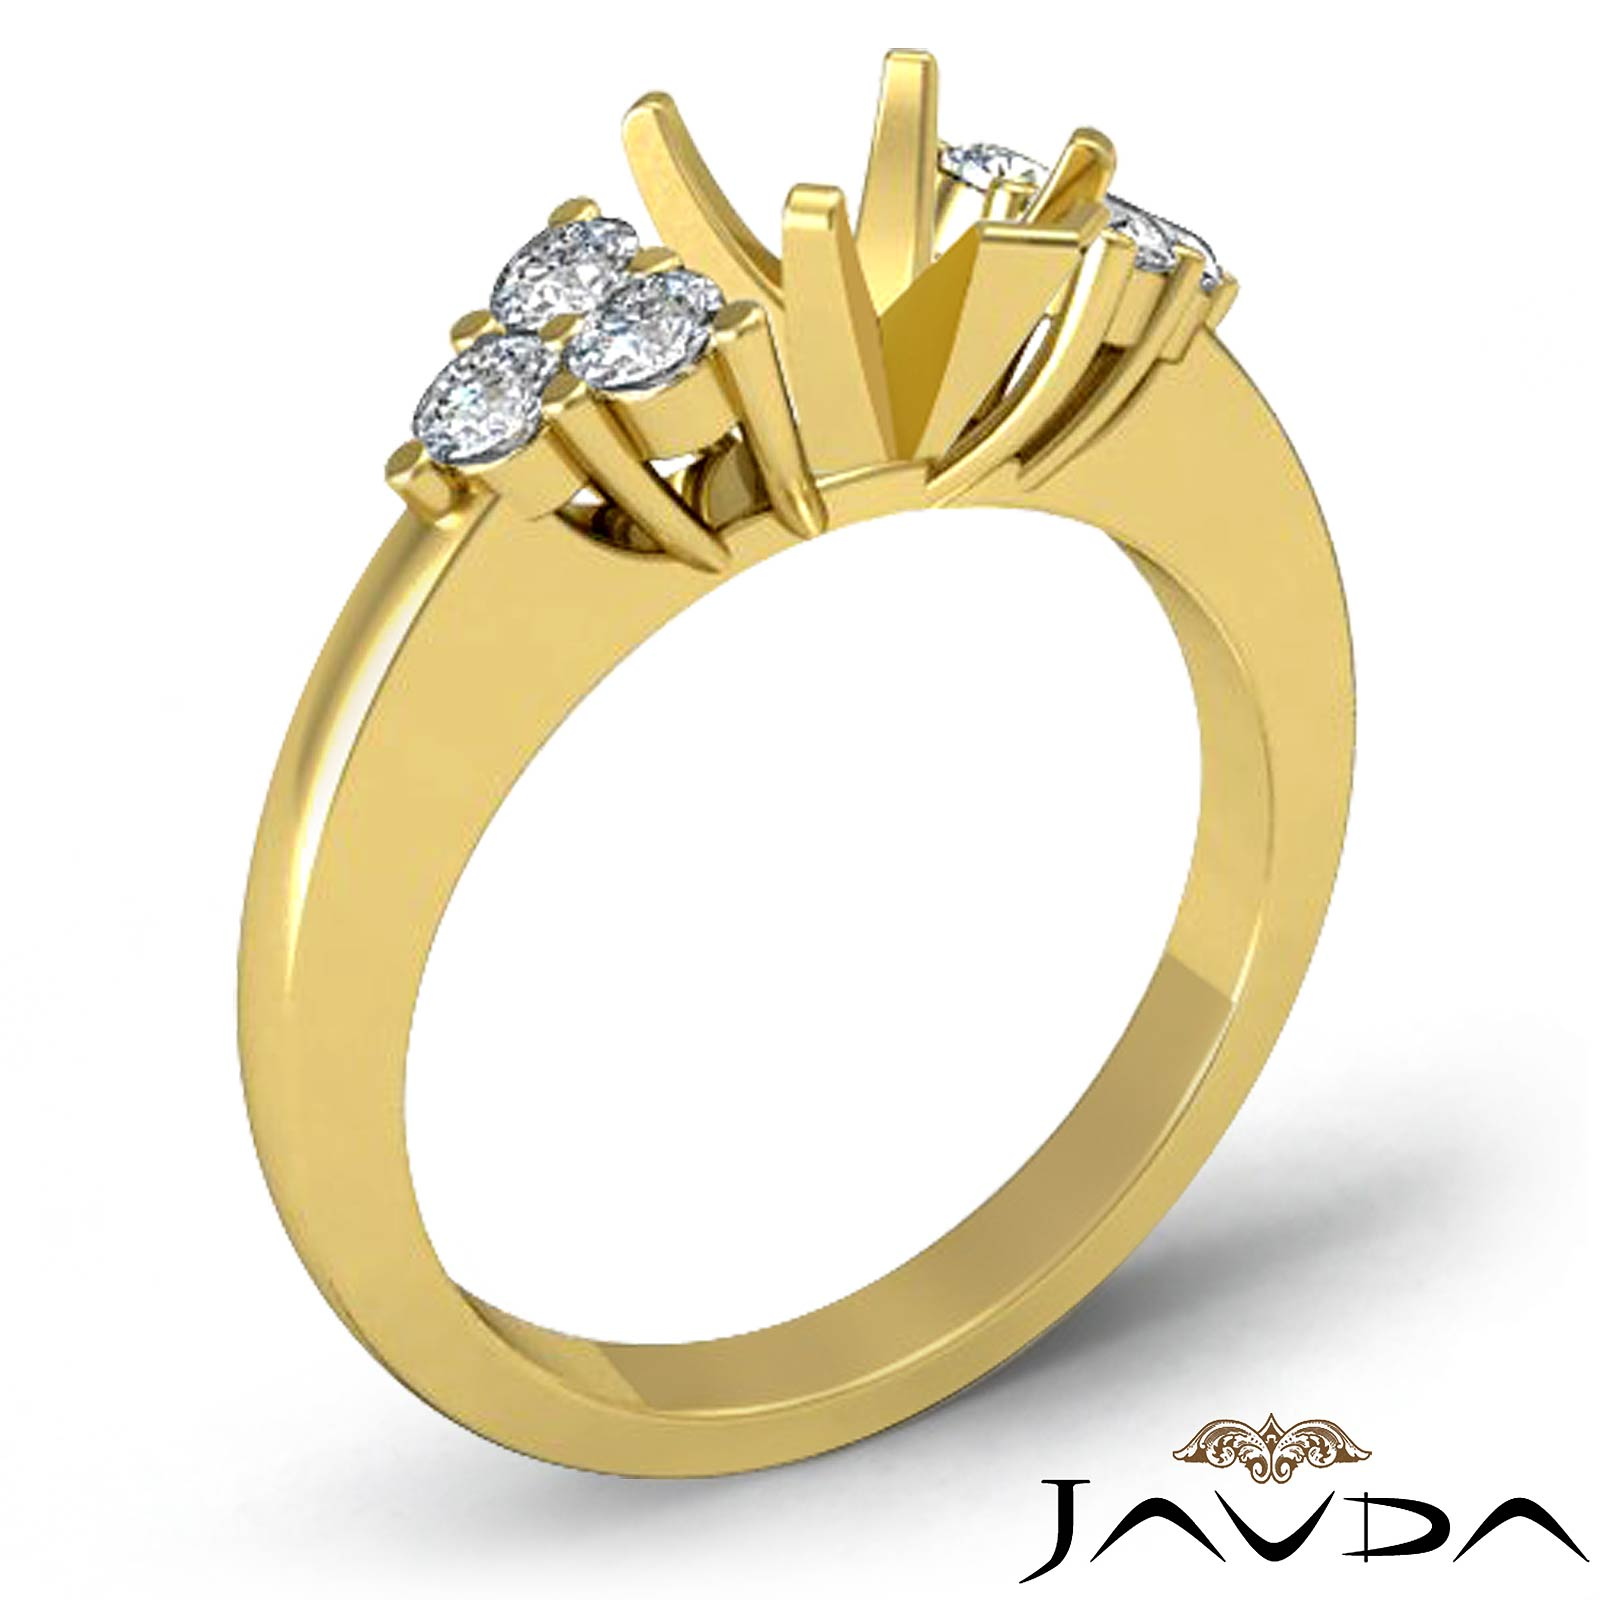 Natural Round Diamond 3 Stone Pear Mount Engagement Ring 18k Yellow Gold 0 3C